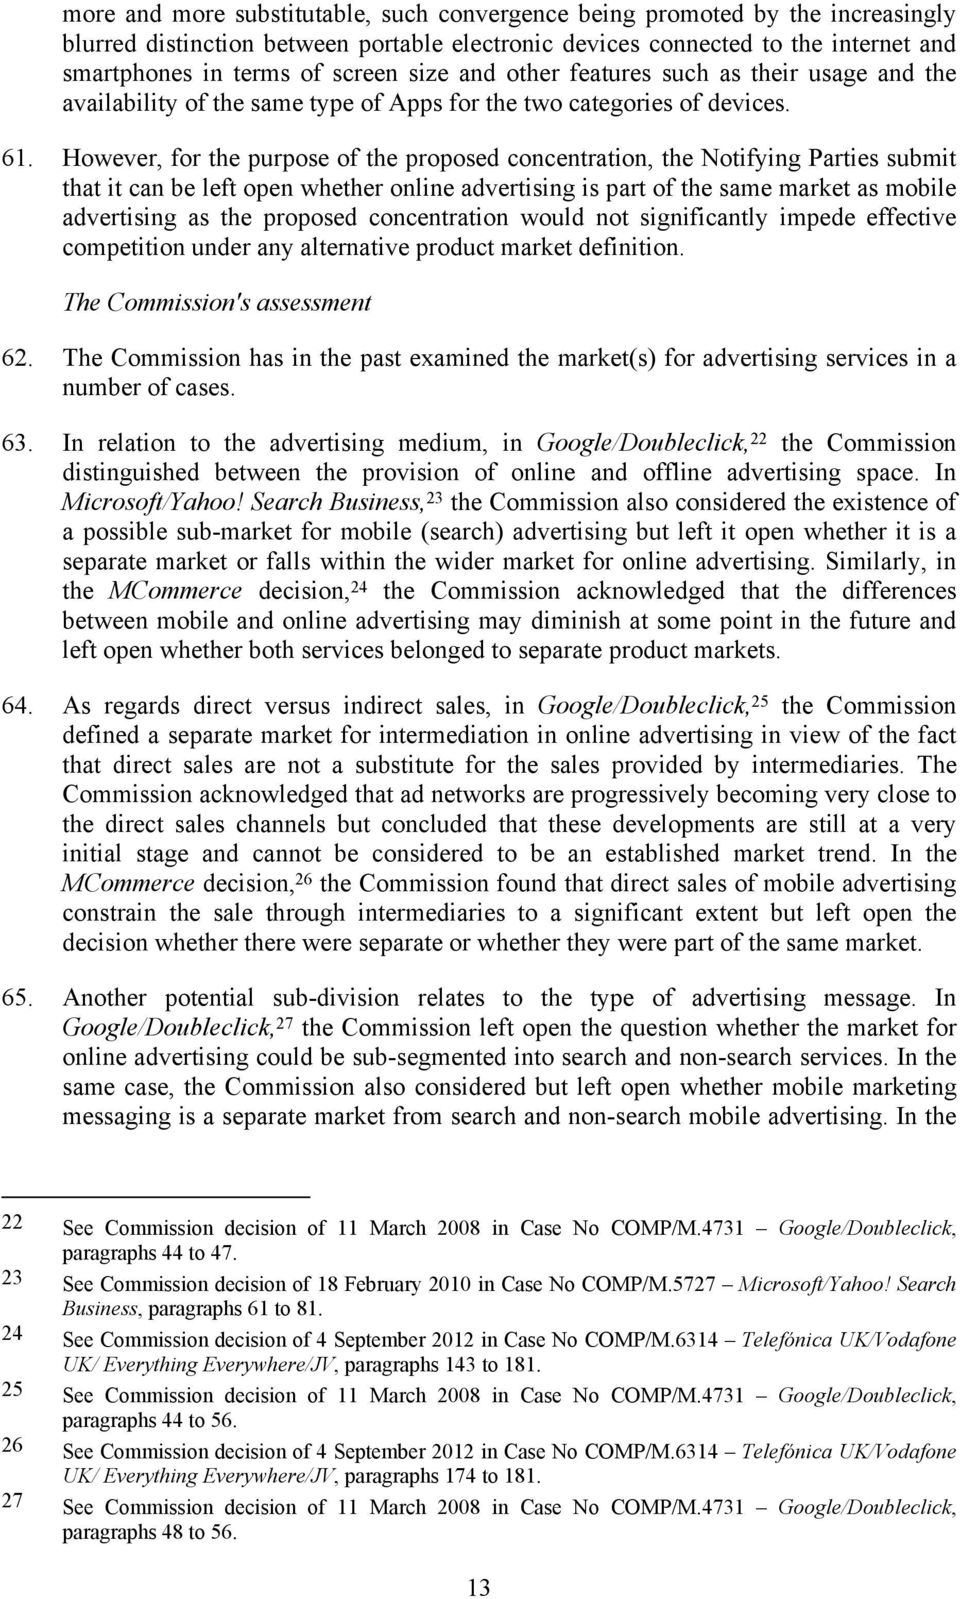 However, for the purpose of the proposed concentration, the Notifying Parties submit that it can be left open whether online advertising is part of the same market as mobile advertising as the